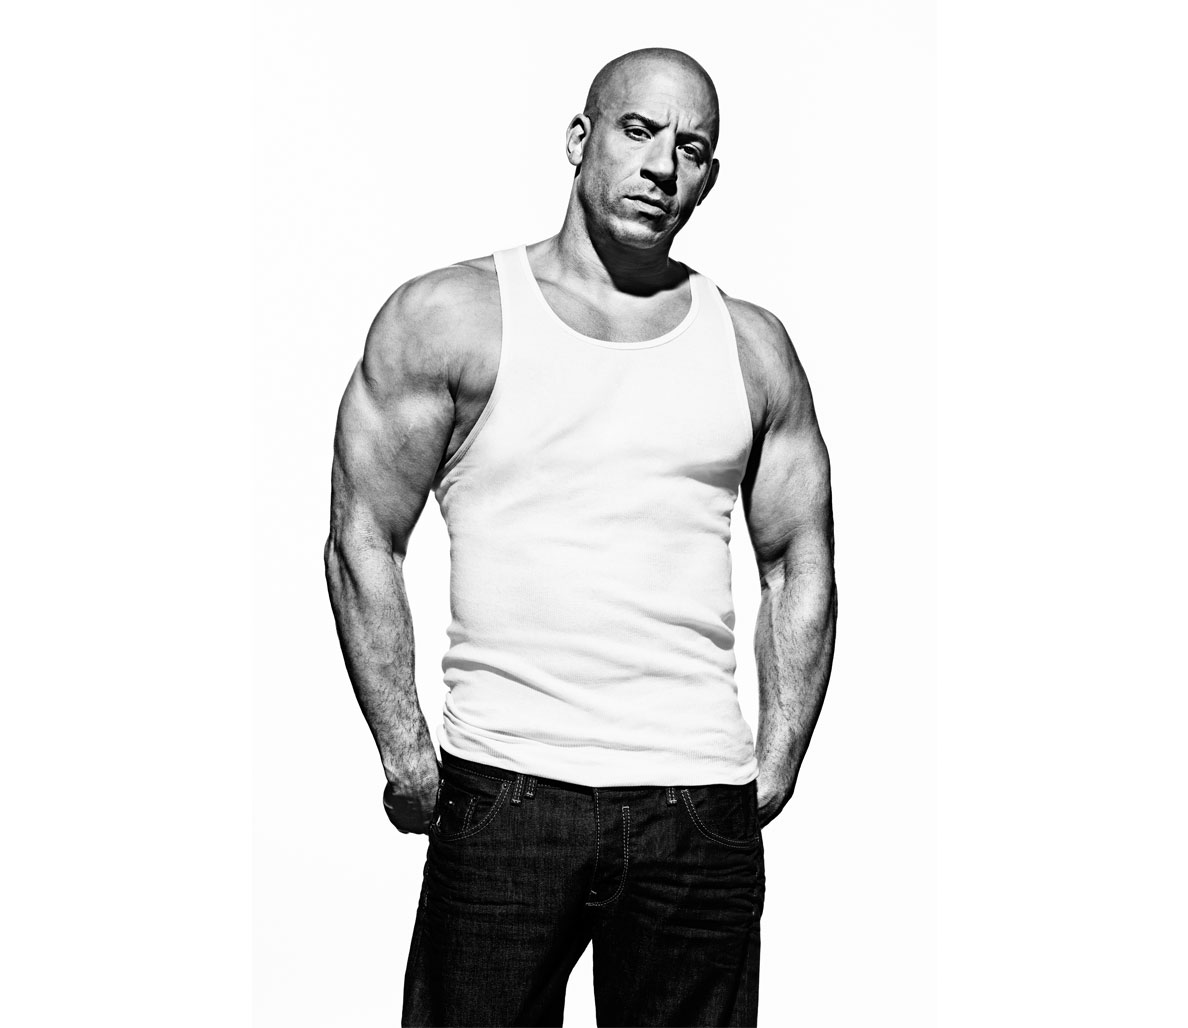 The Workout to Get Arms Like Vin Diesel